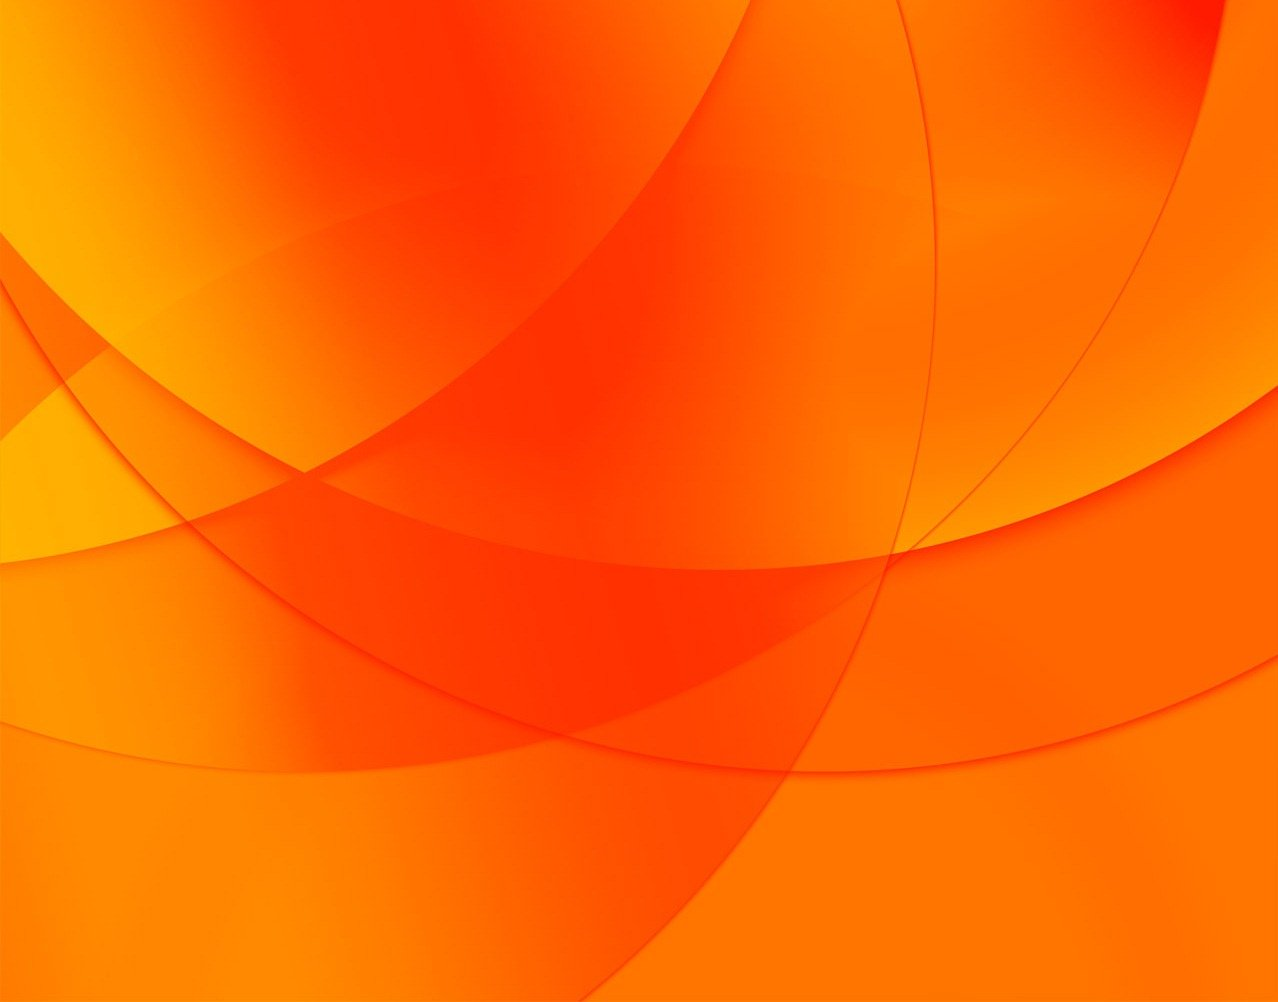 Orange Background Abstract Wallpaper Hd Image Hdcool Backgrounds Solid Plain Dark Black